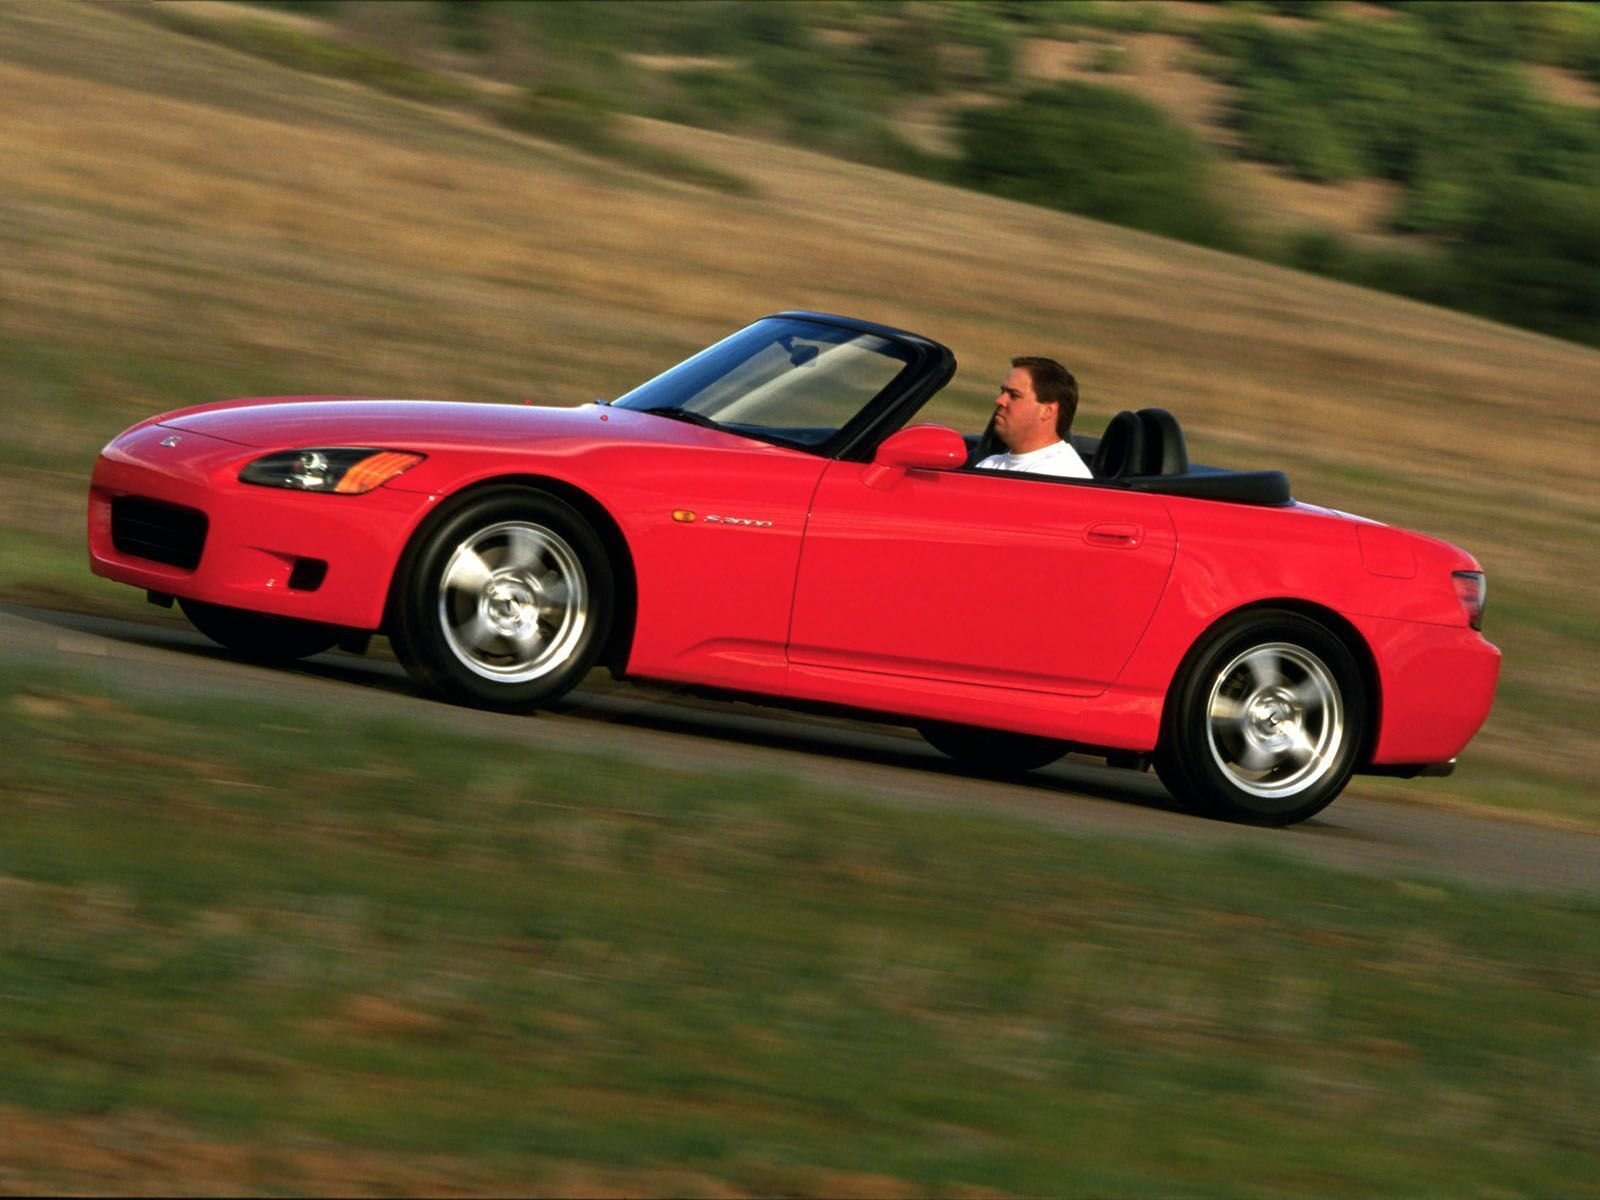 2003 honda s2000 picture 33165 car review top speed. Black Bedroom Furniture Sets. Home Design Ideas